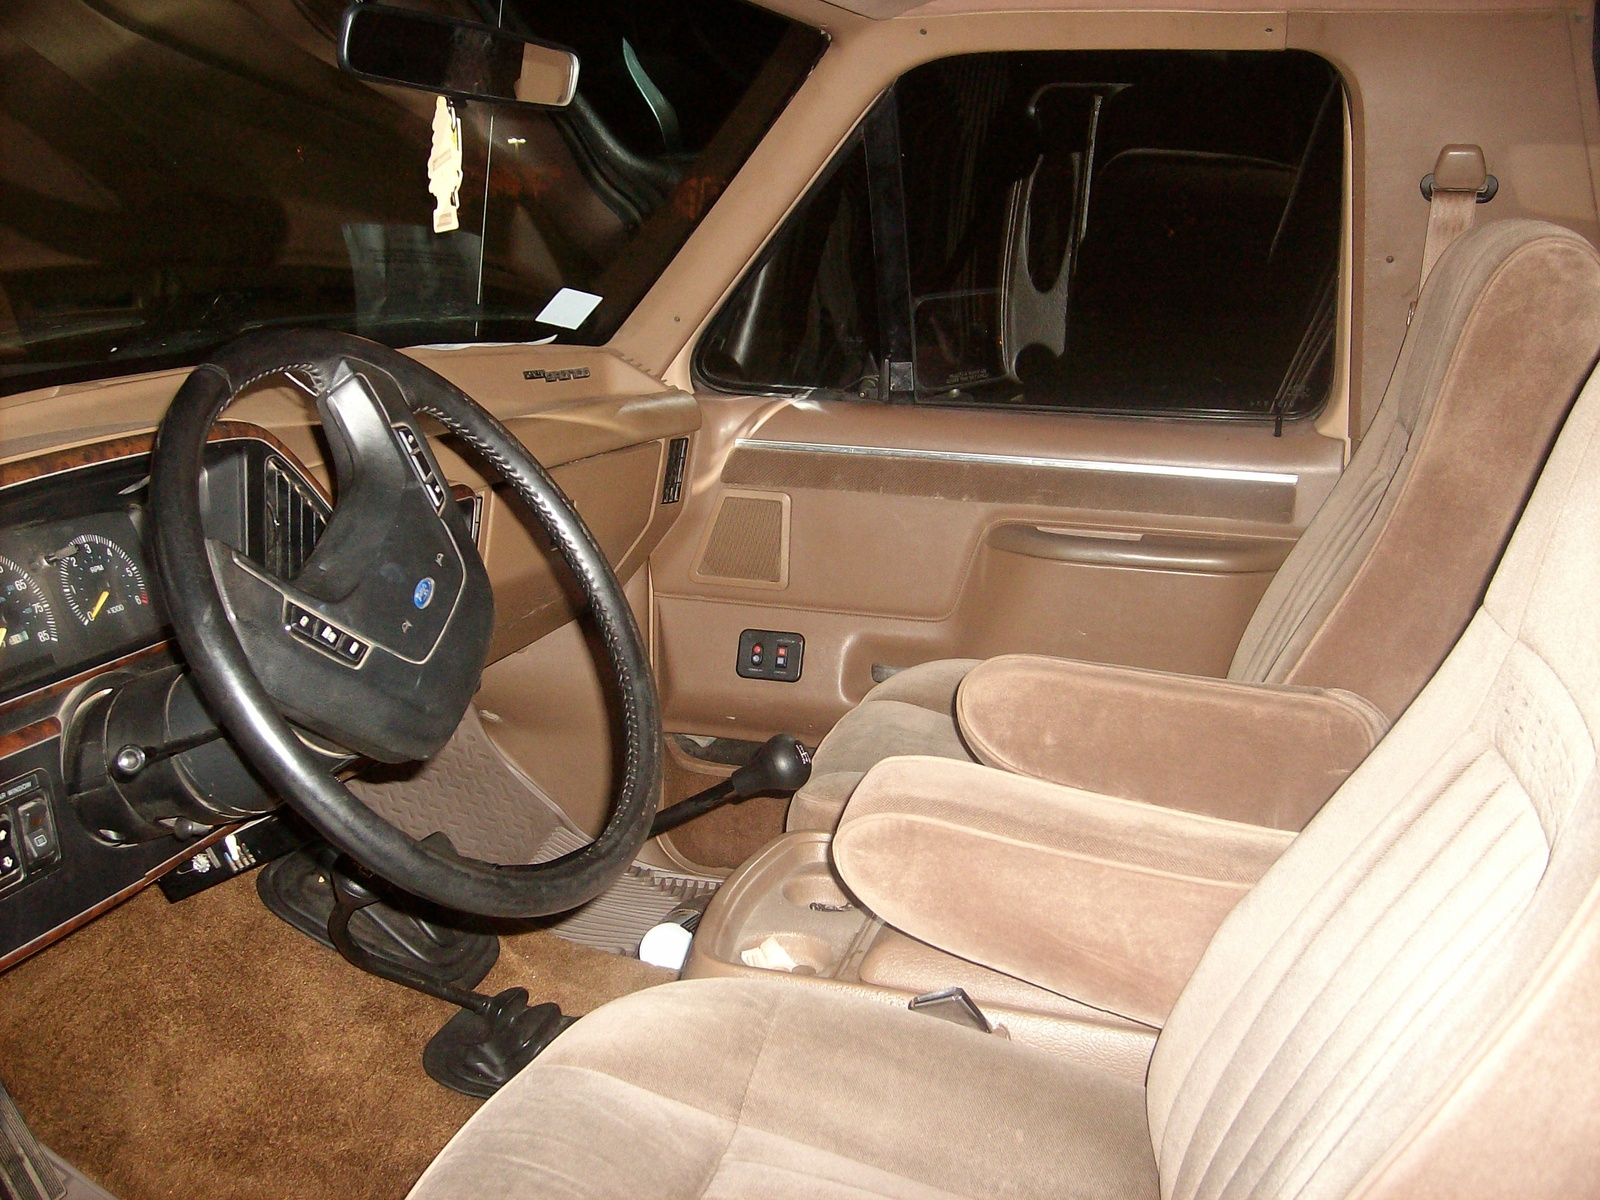 1987 Ford Bronco Interior Picture of 1987 Ford Bronco